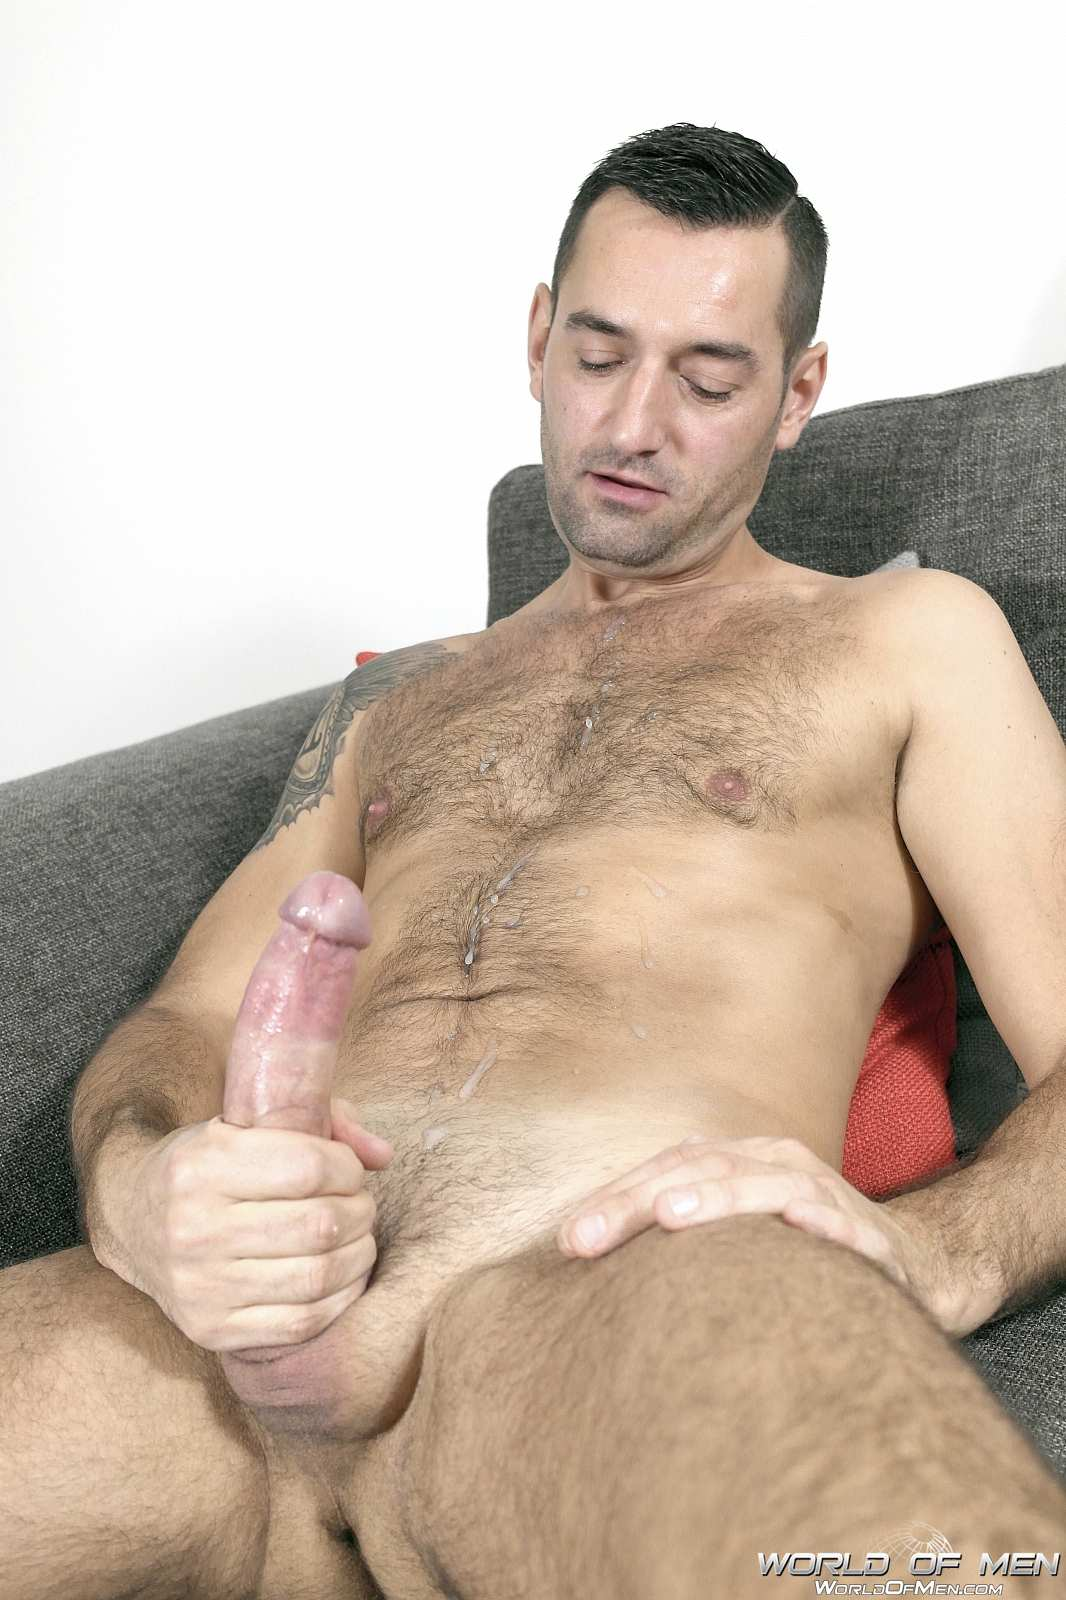 World-Of-Men-Chris-ADam-Big-Uncut-Cock-Jerk-Off-Masturbation-Amateur-Gay-Porn-14 Hairy Sexy Stud Fingers His Ass And Plays With His Huge Uncut Cock